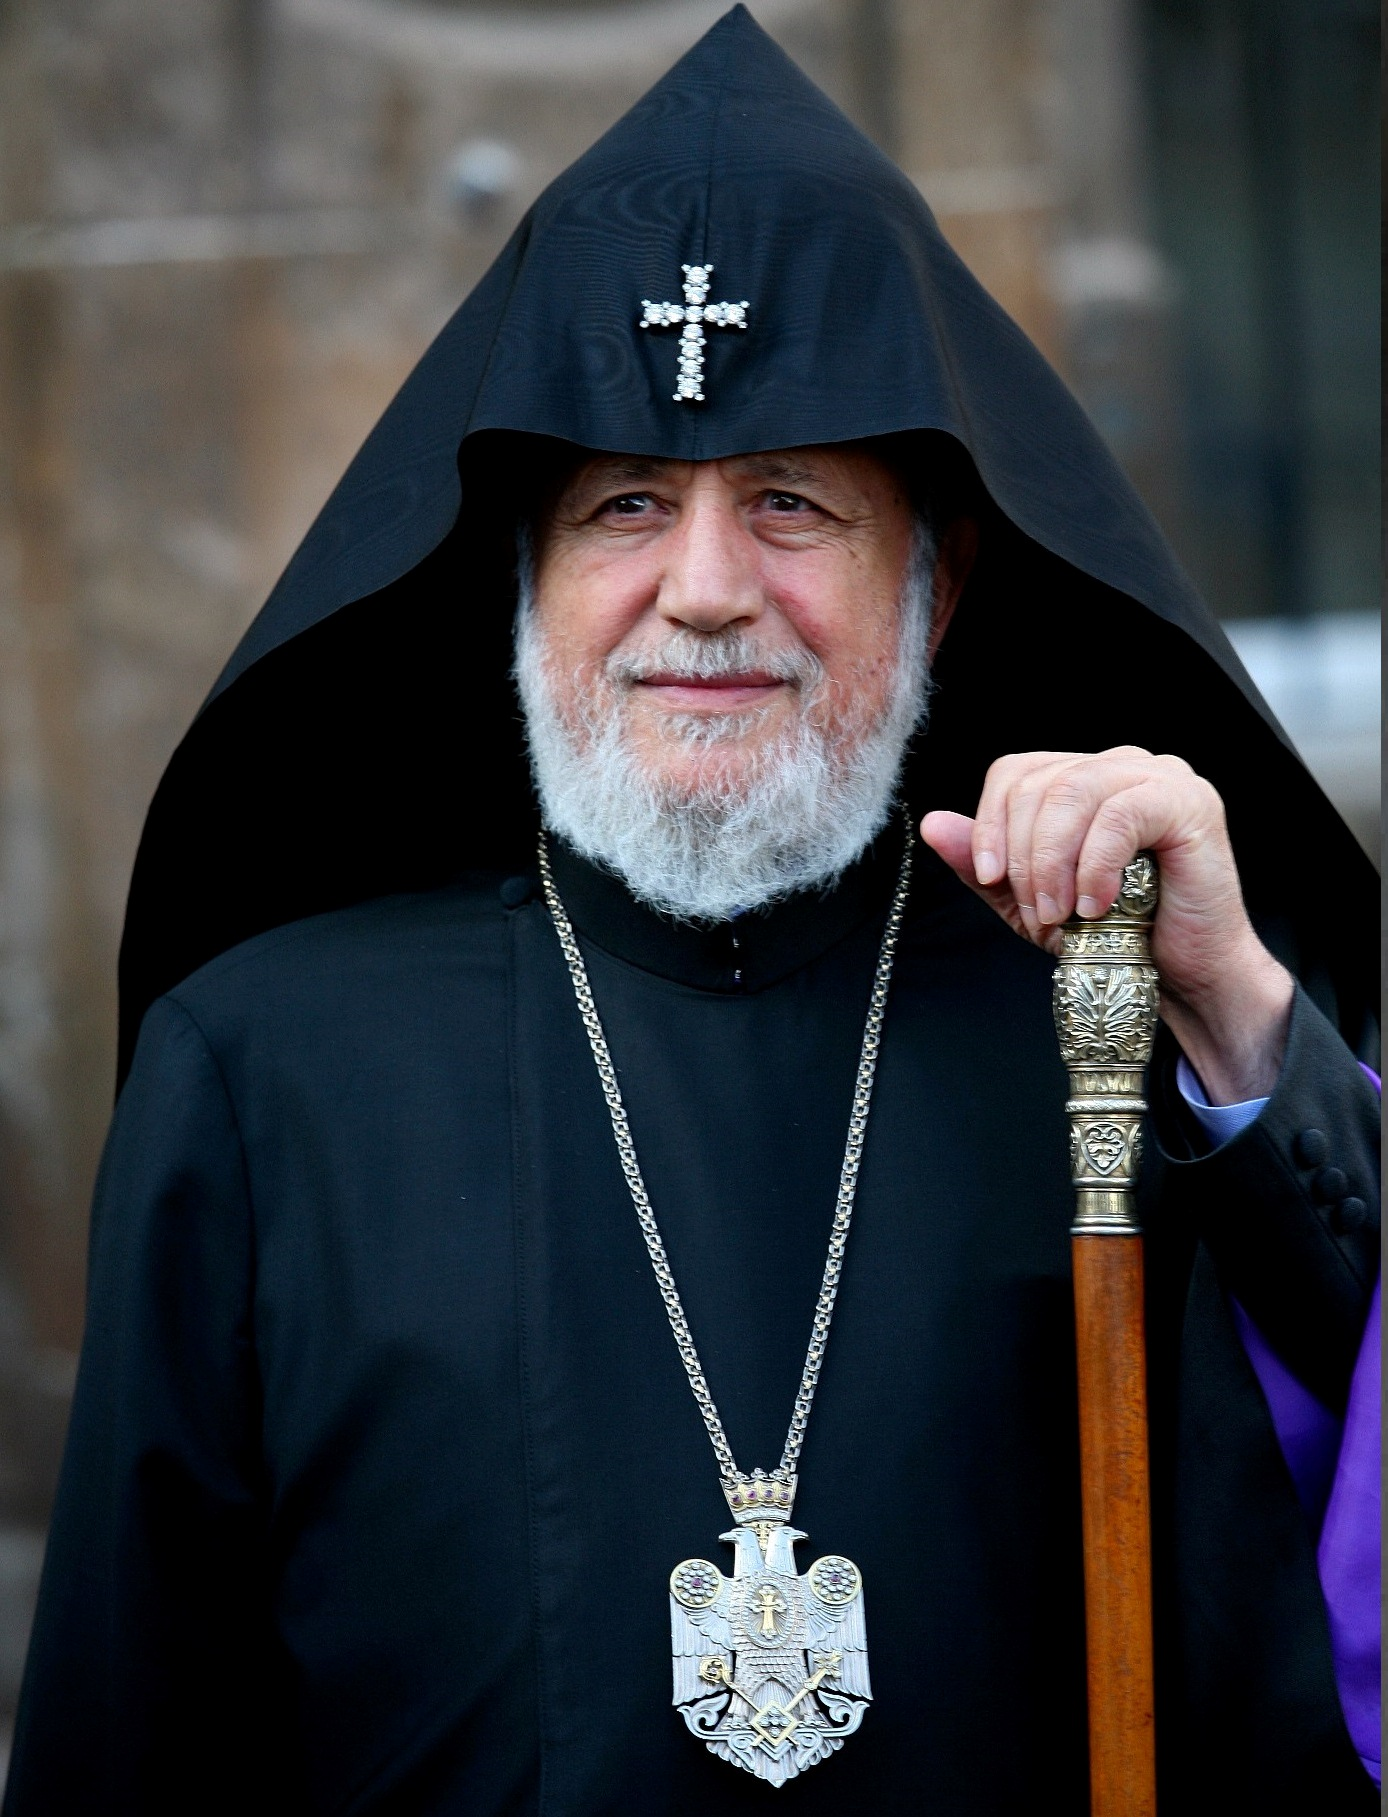 Armenian Catholic Leader Nerses Bedros XIX Passes Away